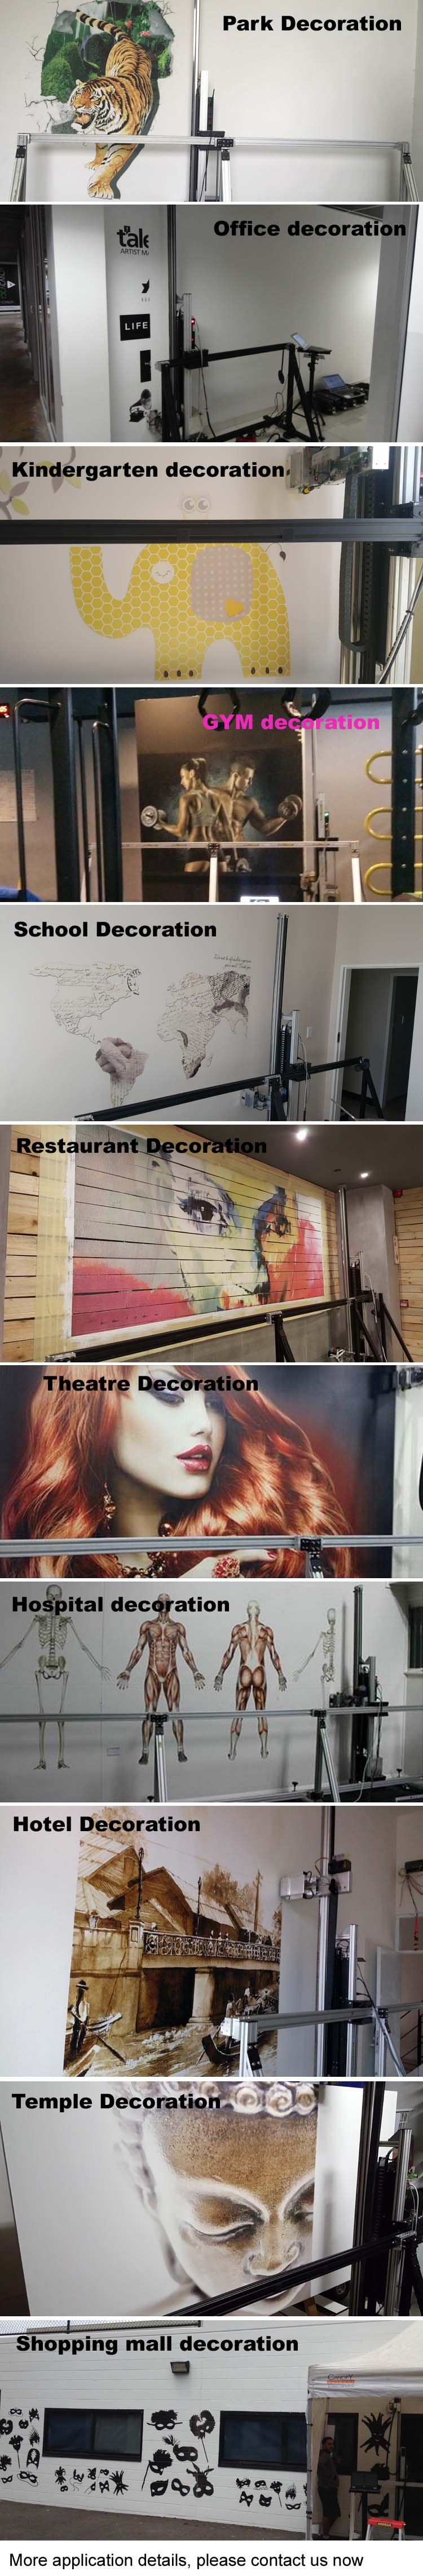 wall printer application